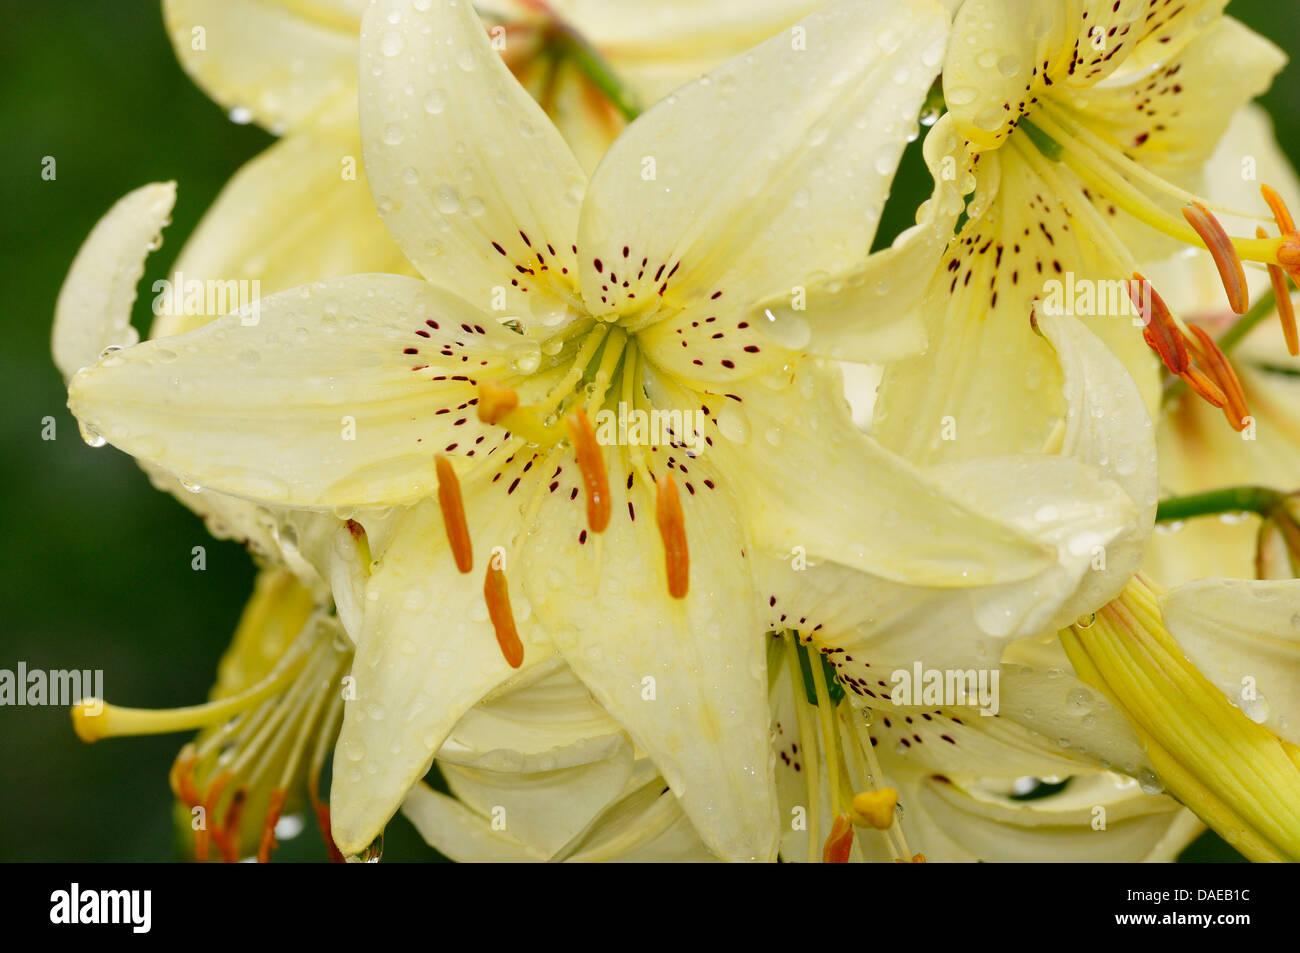 Lily flowers with raindrops stock photos lily flowers with lily flowers with raindrops stock image izmirmasajfo